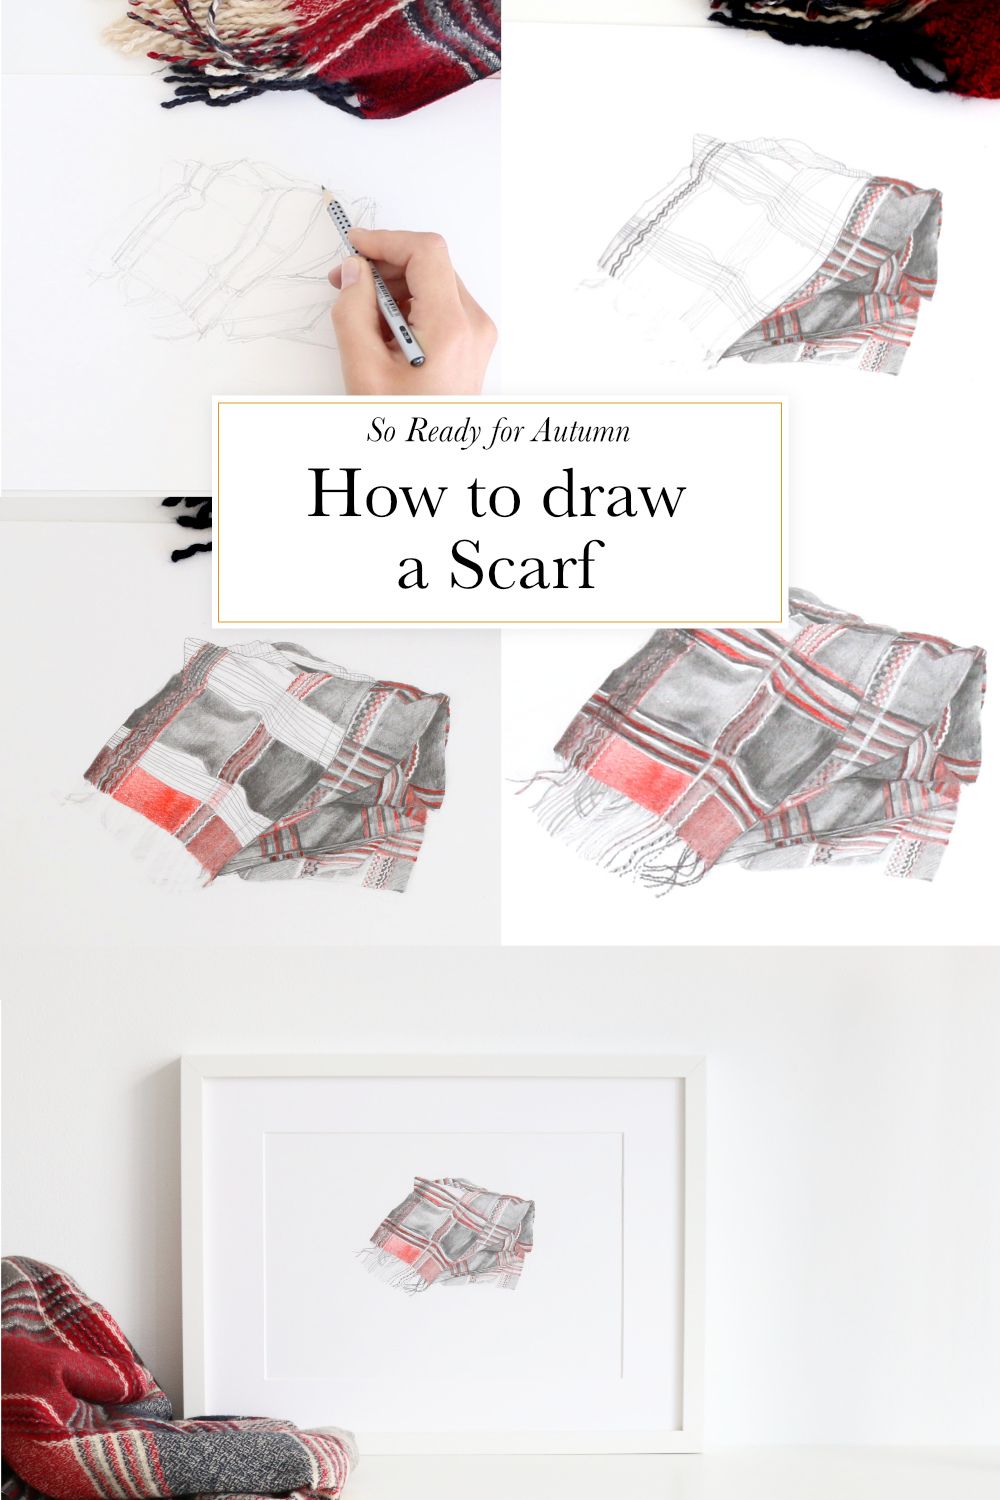 How to draw a scarf | The Daily atelier